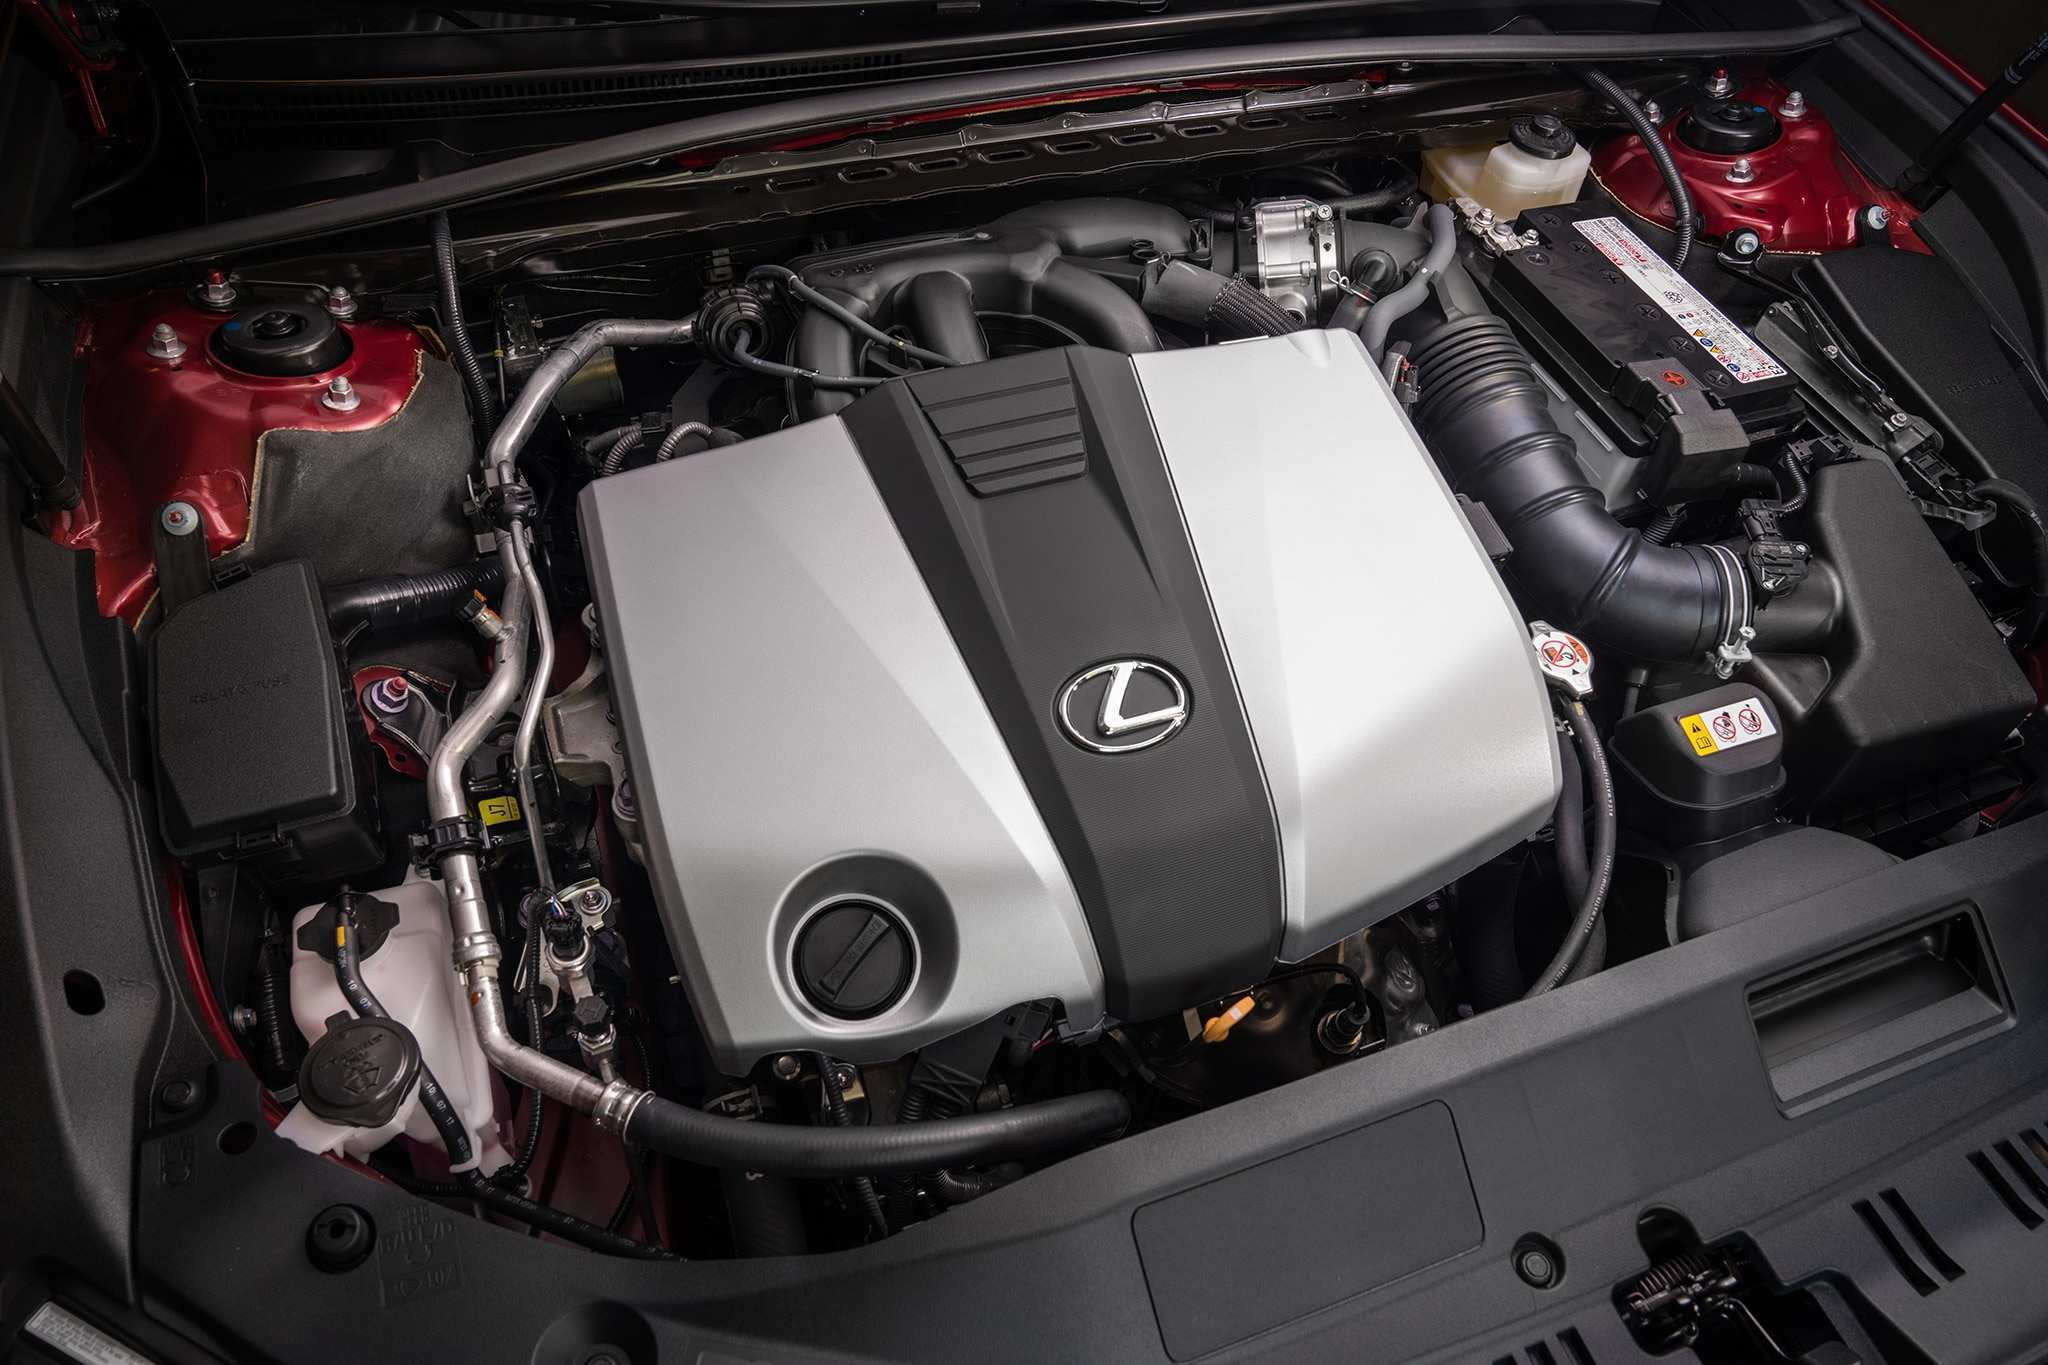 99 Great When Will The 2019 Lexus Be Available New Engine Configurations with When Will The 2019 Lexus Be Available New Engine